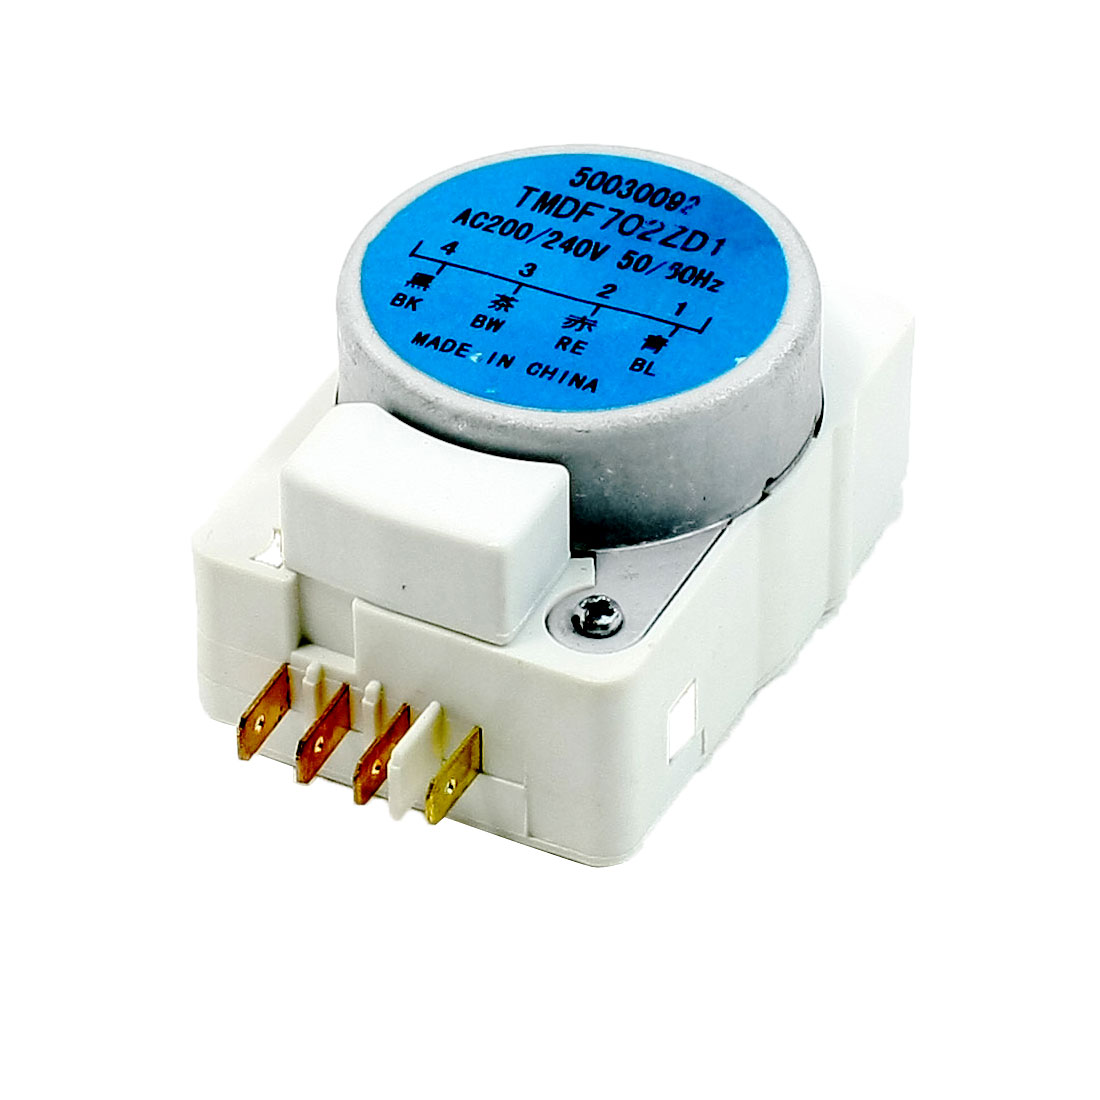 AC 200V/240V 50/60Hz Replacing Rectangle Shaped Refrigerator Defrost Timer